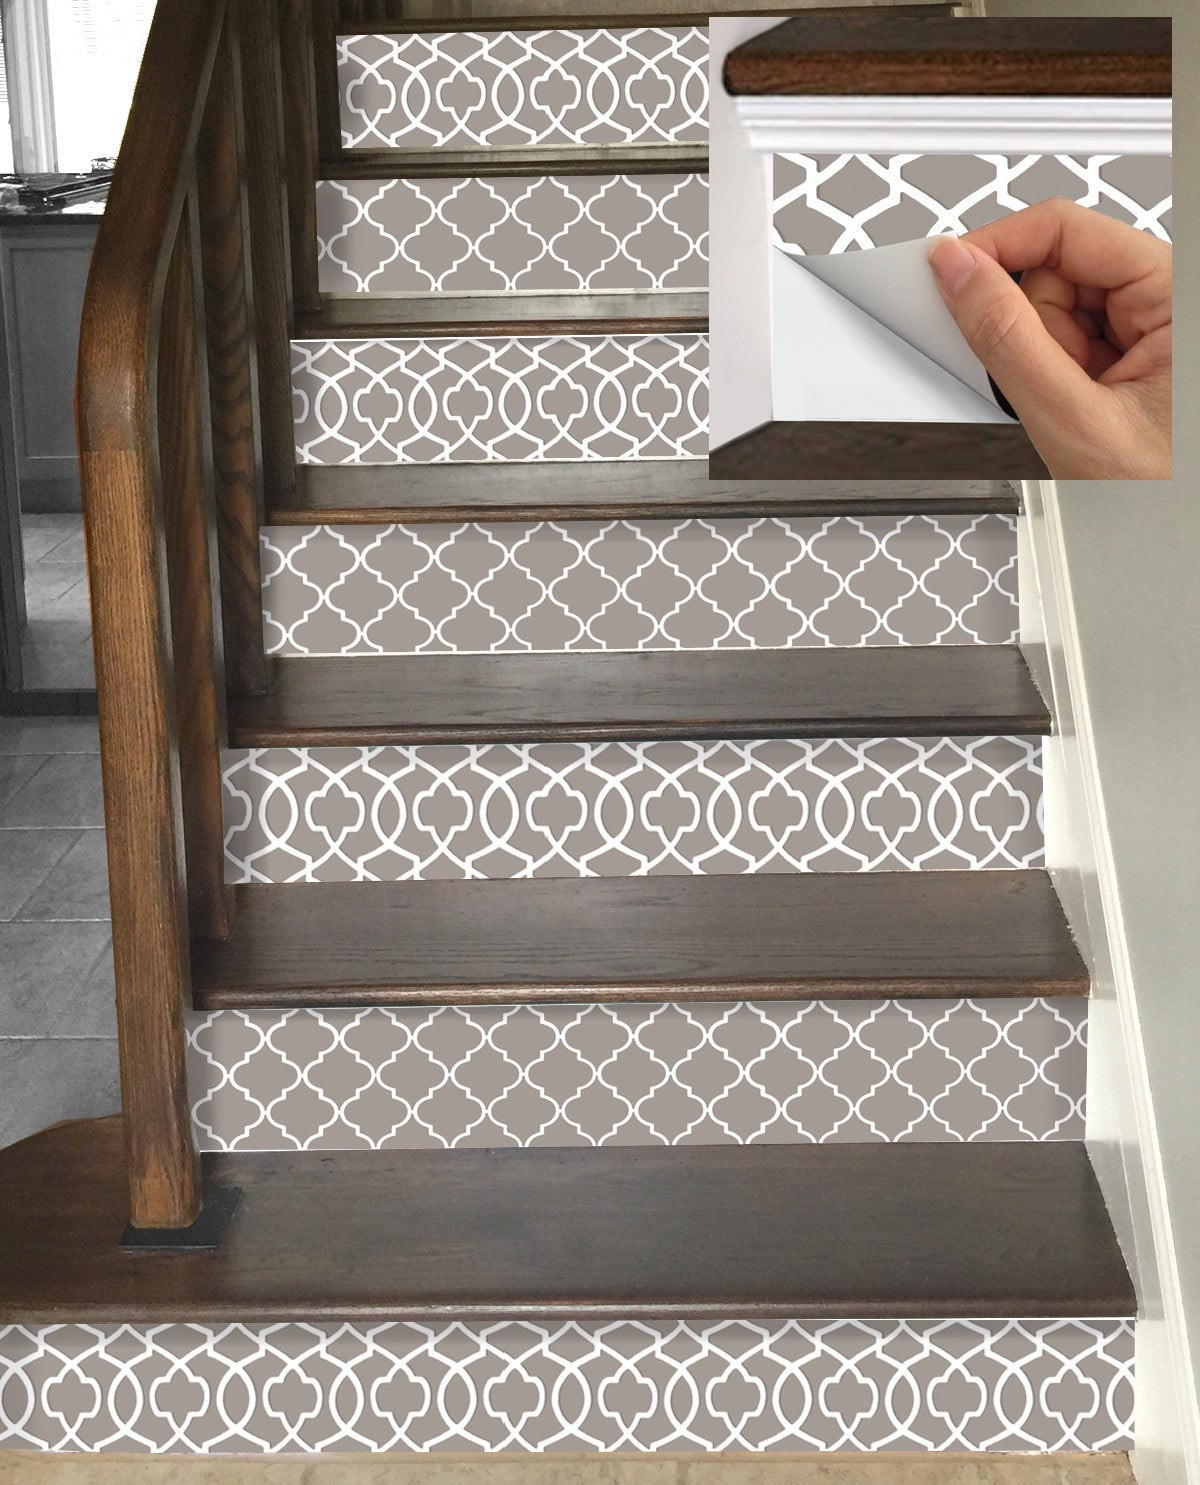 12 Stunning Examples Of Decorative Stair Riser Decals The Flooring